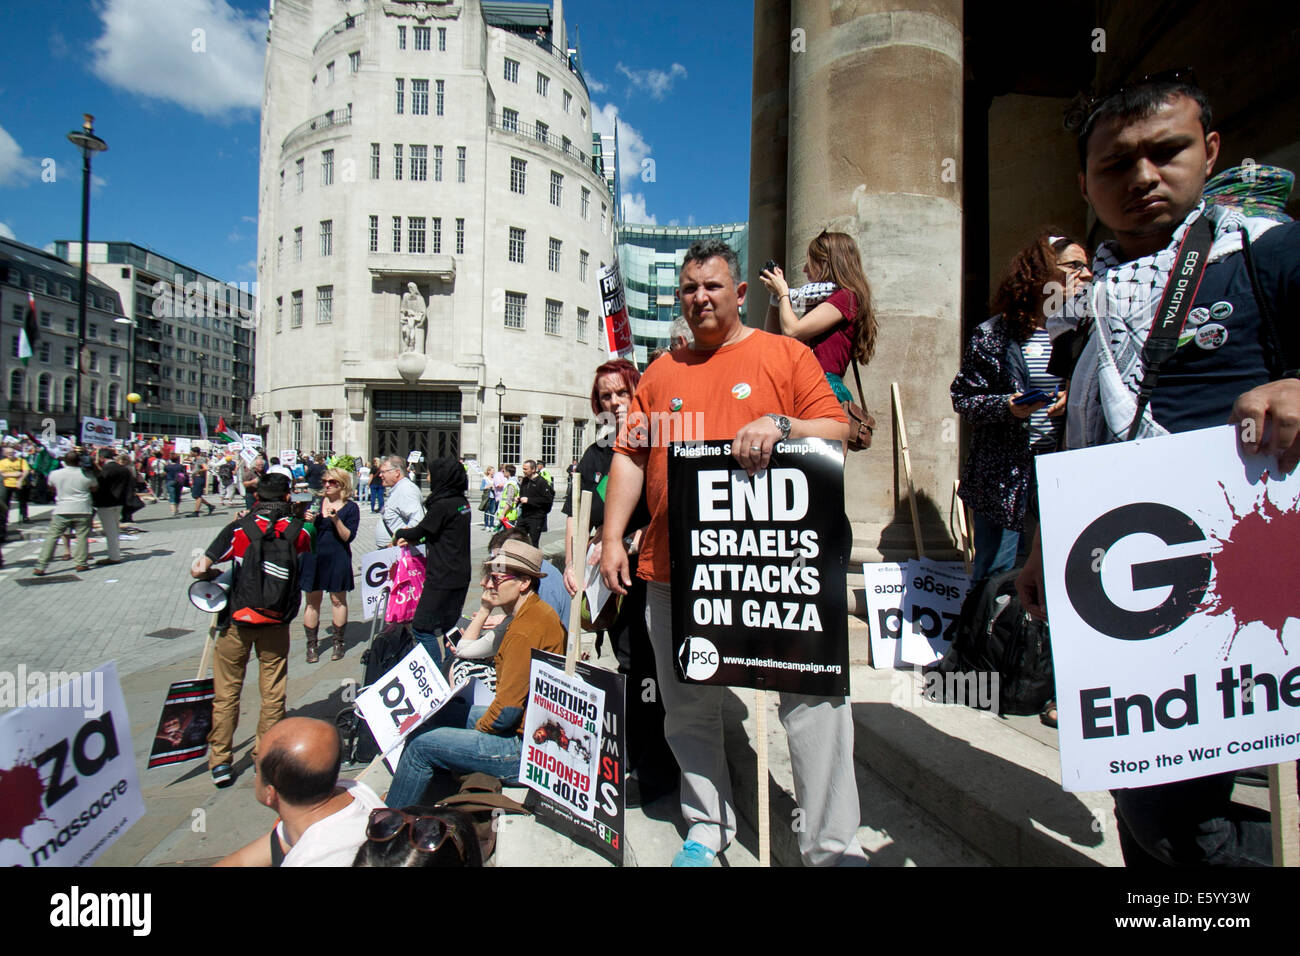 London, UK. 9th August, 2014. Protesters with placards outside BBC headquarters. Thousands of protesters marched - Stock Image